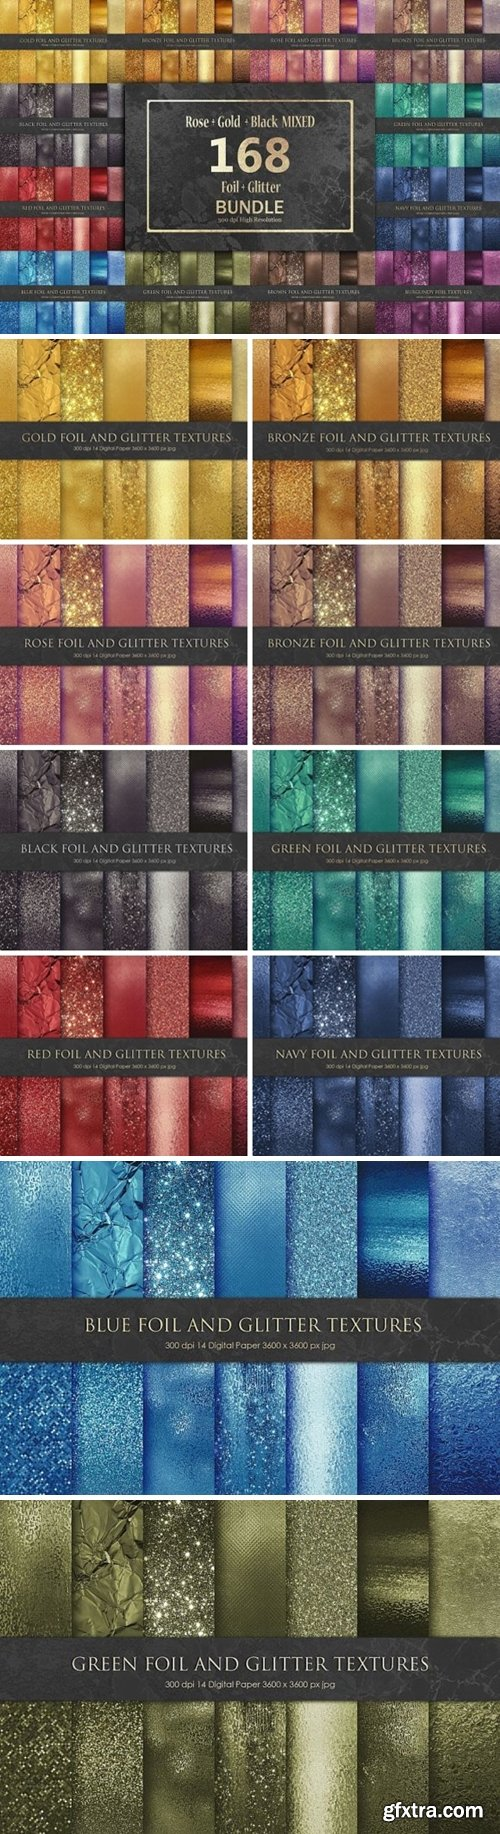 Foil and Glitter Bundle 168 Textures